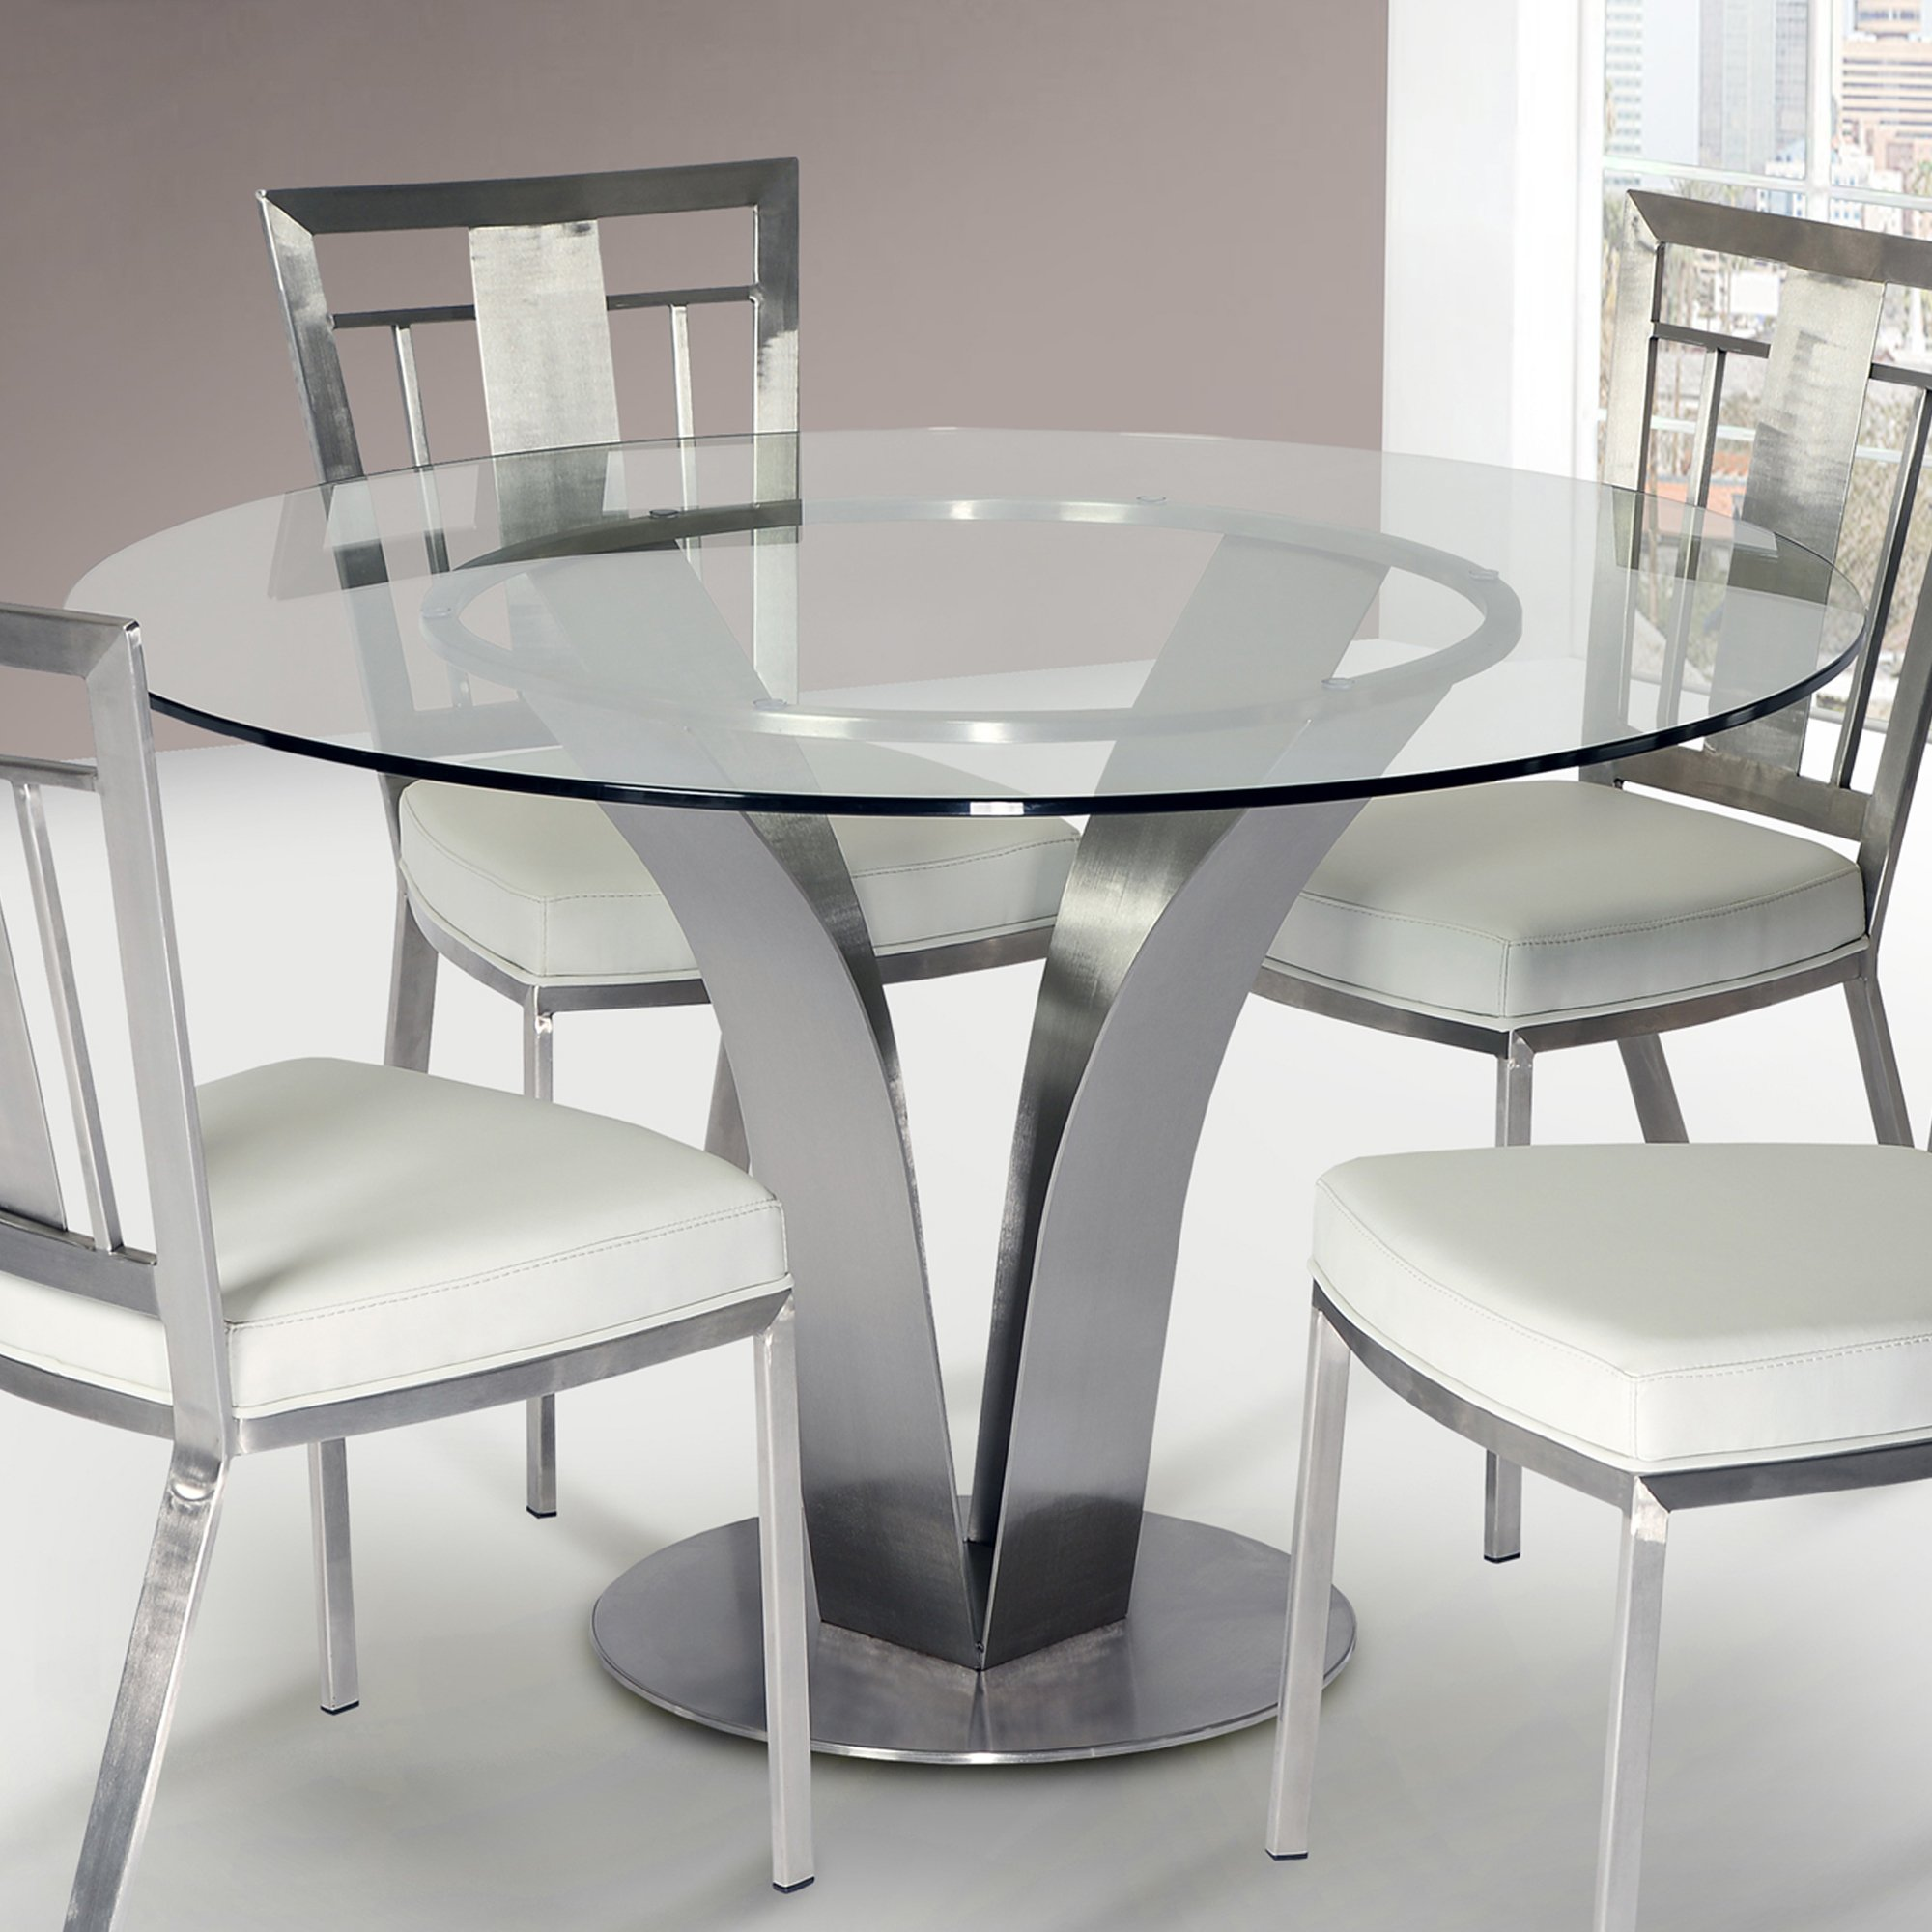 Armen Living LCCLDIB201TO Cleo Dining Table with Clear Glass and Brushed Stainless Steel Finish by Armen Living